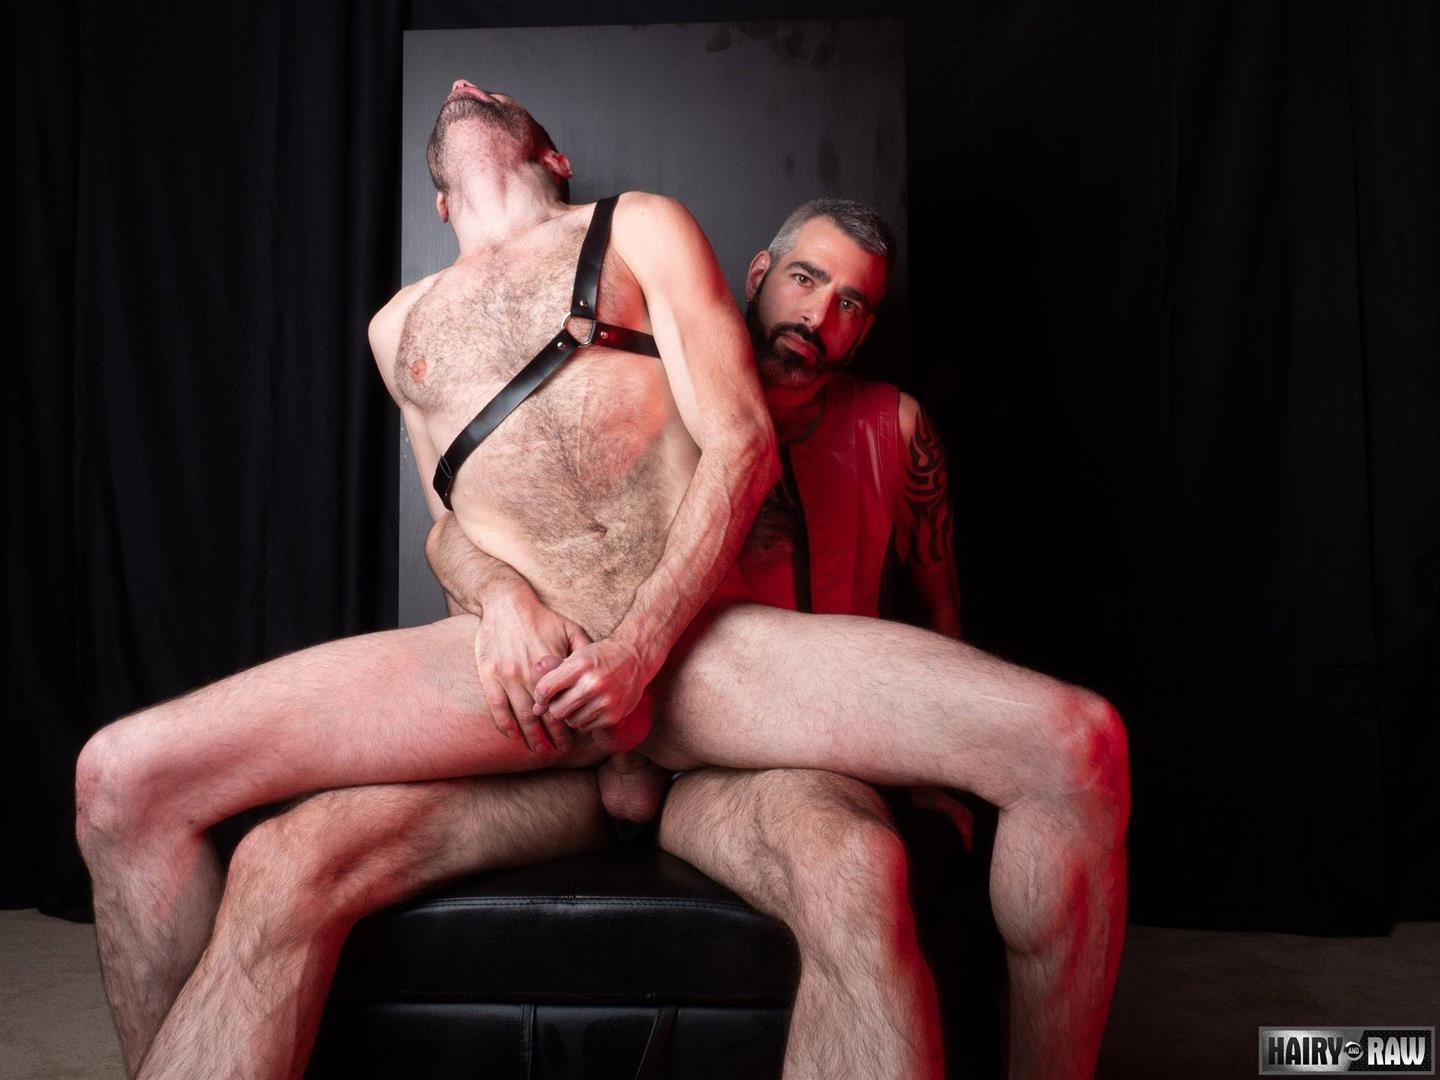 Hairy-and-Raw-Rex-Hunter-and-Dusty-Williams-Hairy-Leather-Daddy-Big-Uncut-Cock-Bareback-Video-22 Dusty Williams Begs For Daddy Rex Hunter's Big Uncut Cock To Breed His Ass